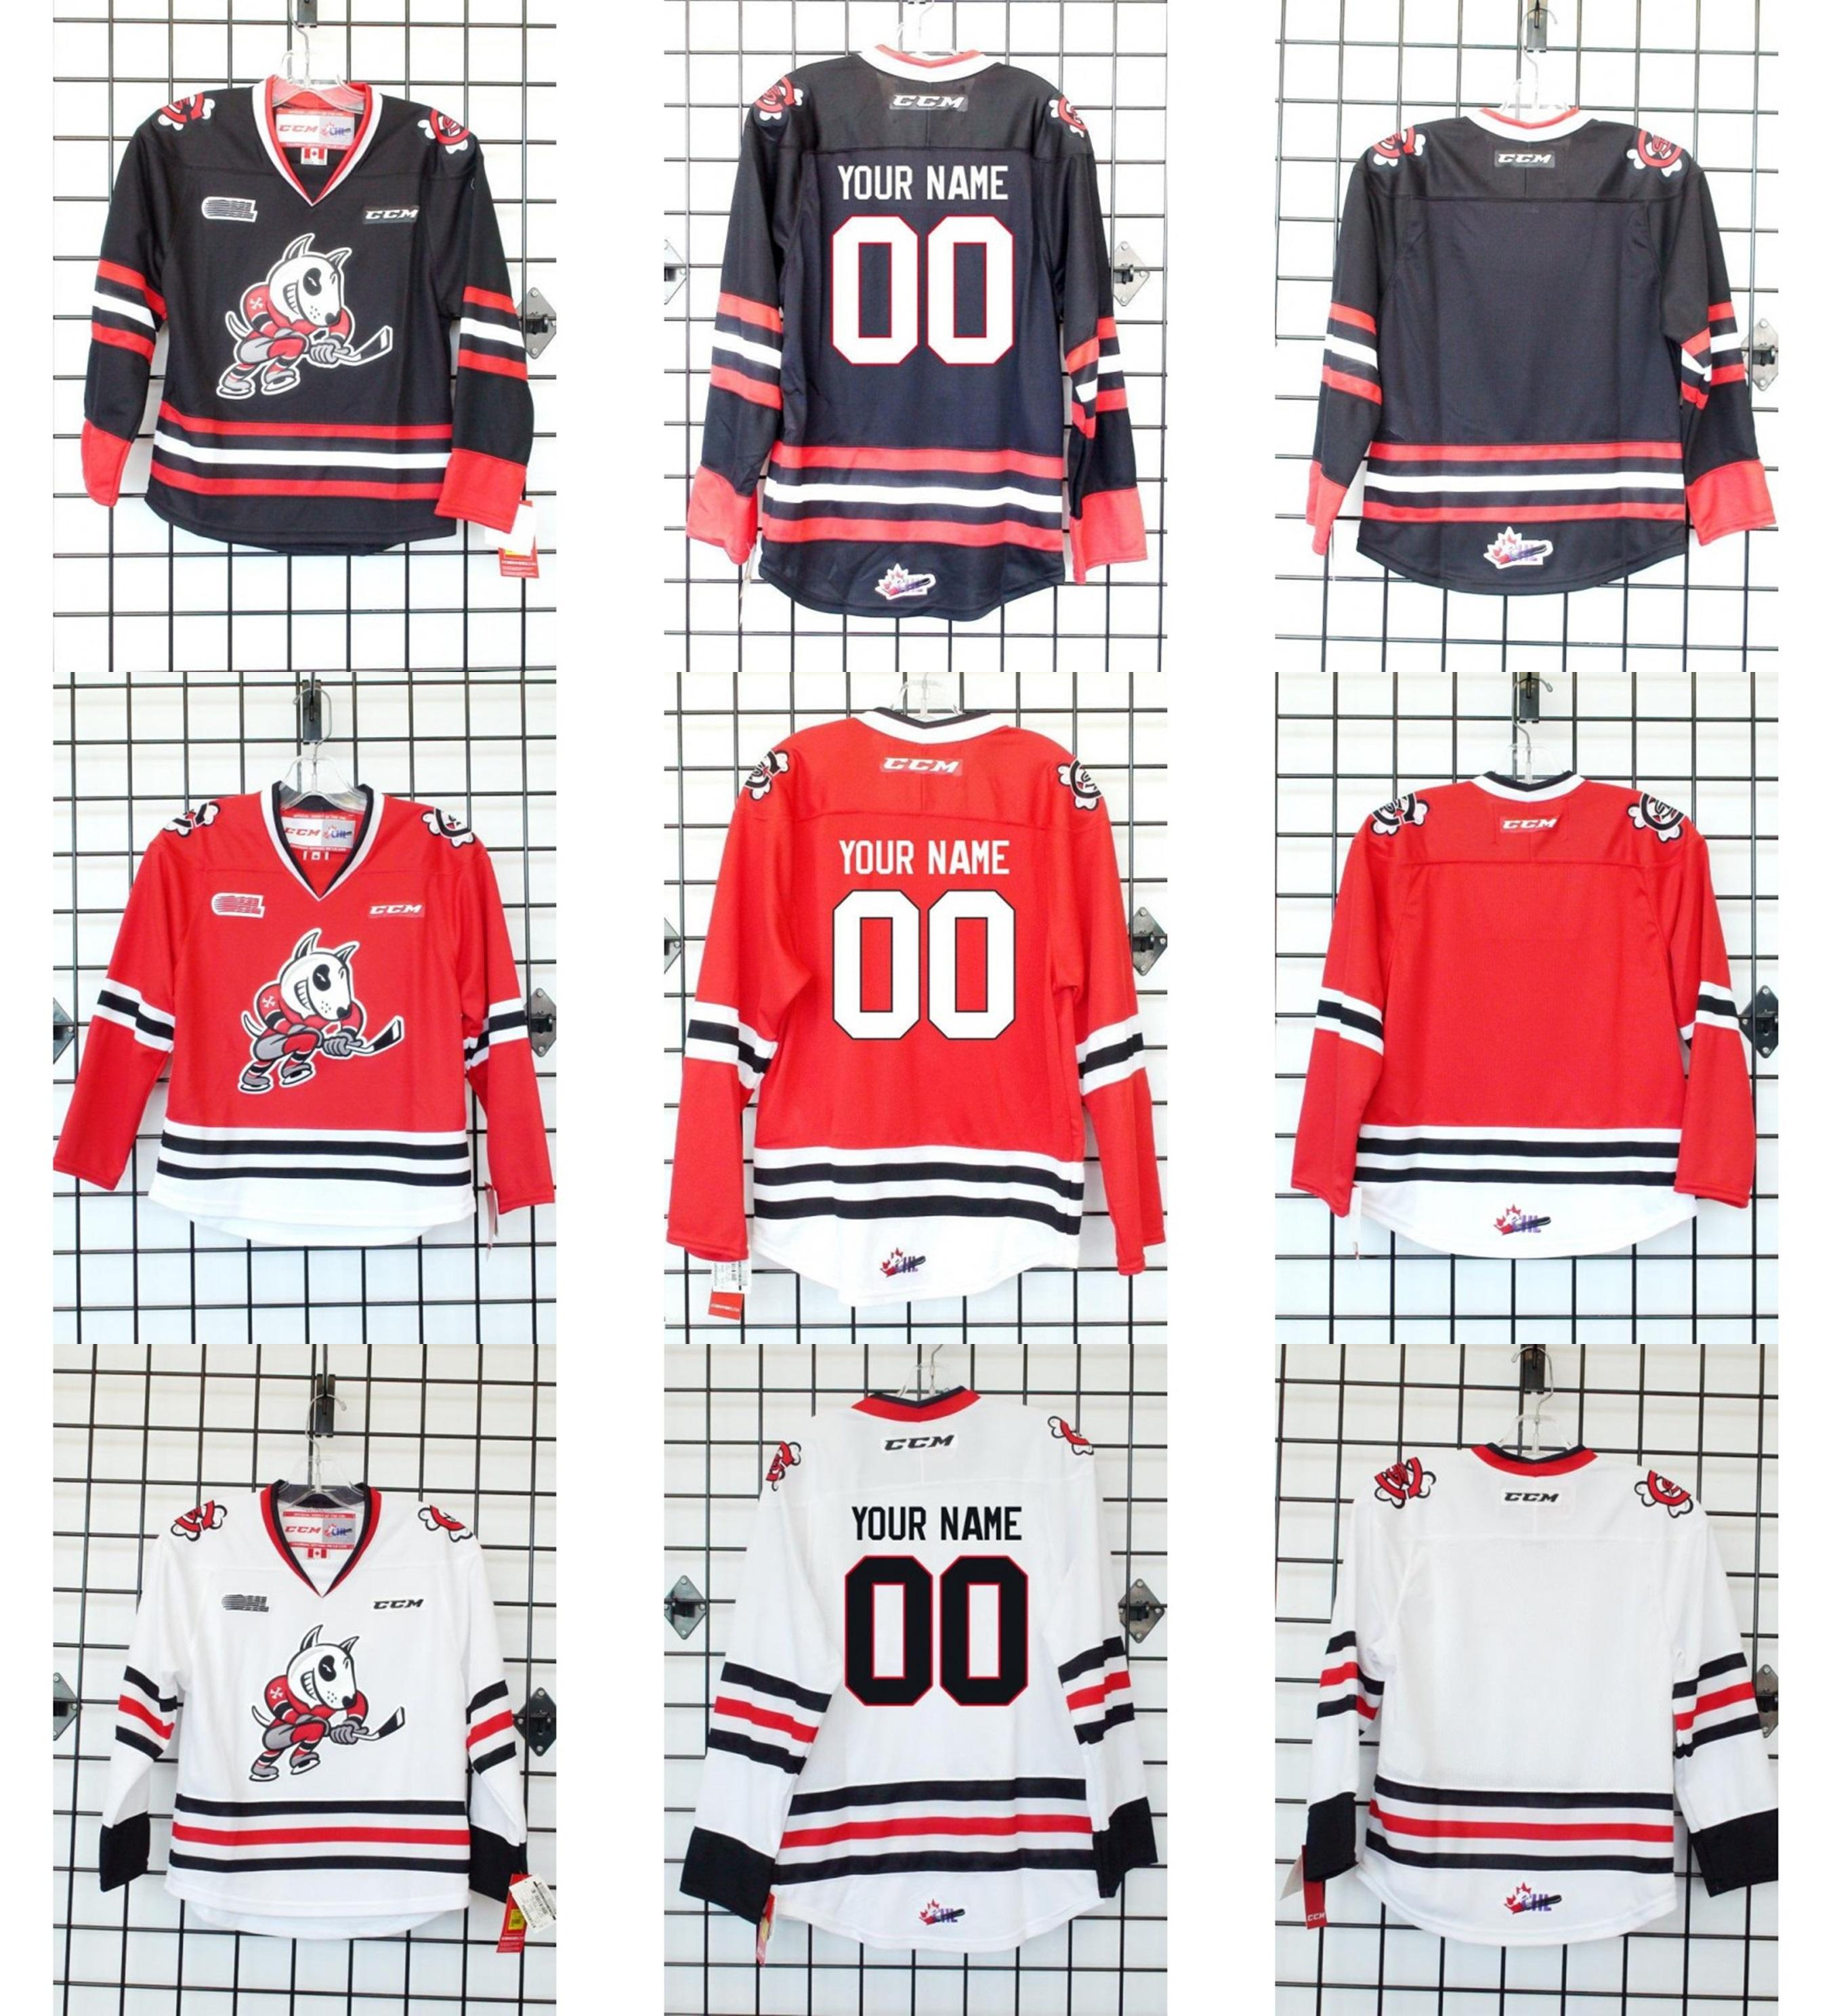 2019 2016 Customize OHL Niagara IceDogs Jersey Mens Womens Kids Black White  Red Ice Hockey Cheap Jerseys Custom Any Name Any NO.Goalit Cut From Since 5d199dbce